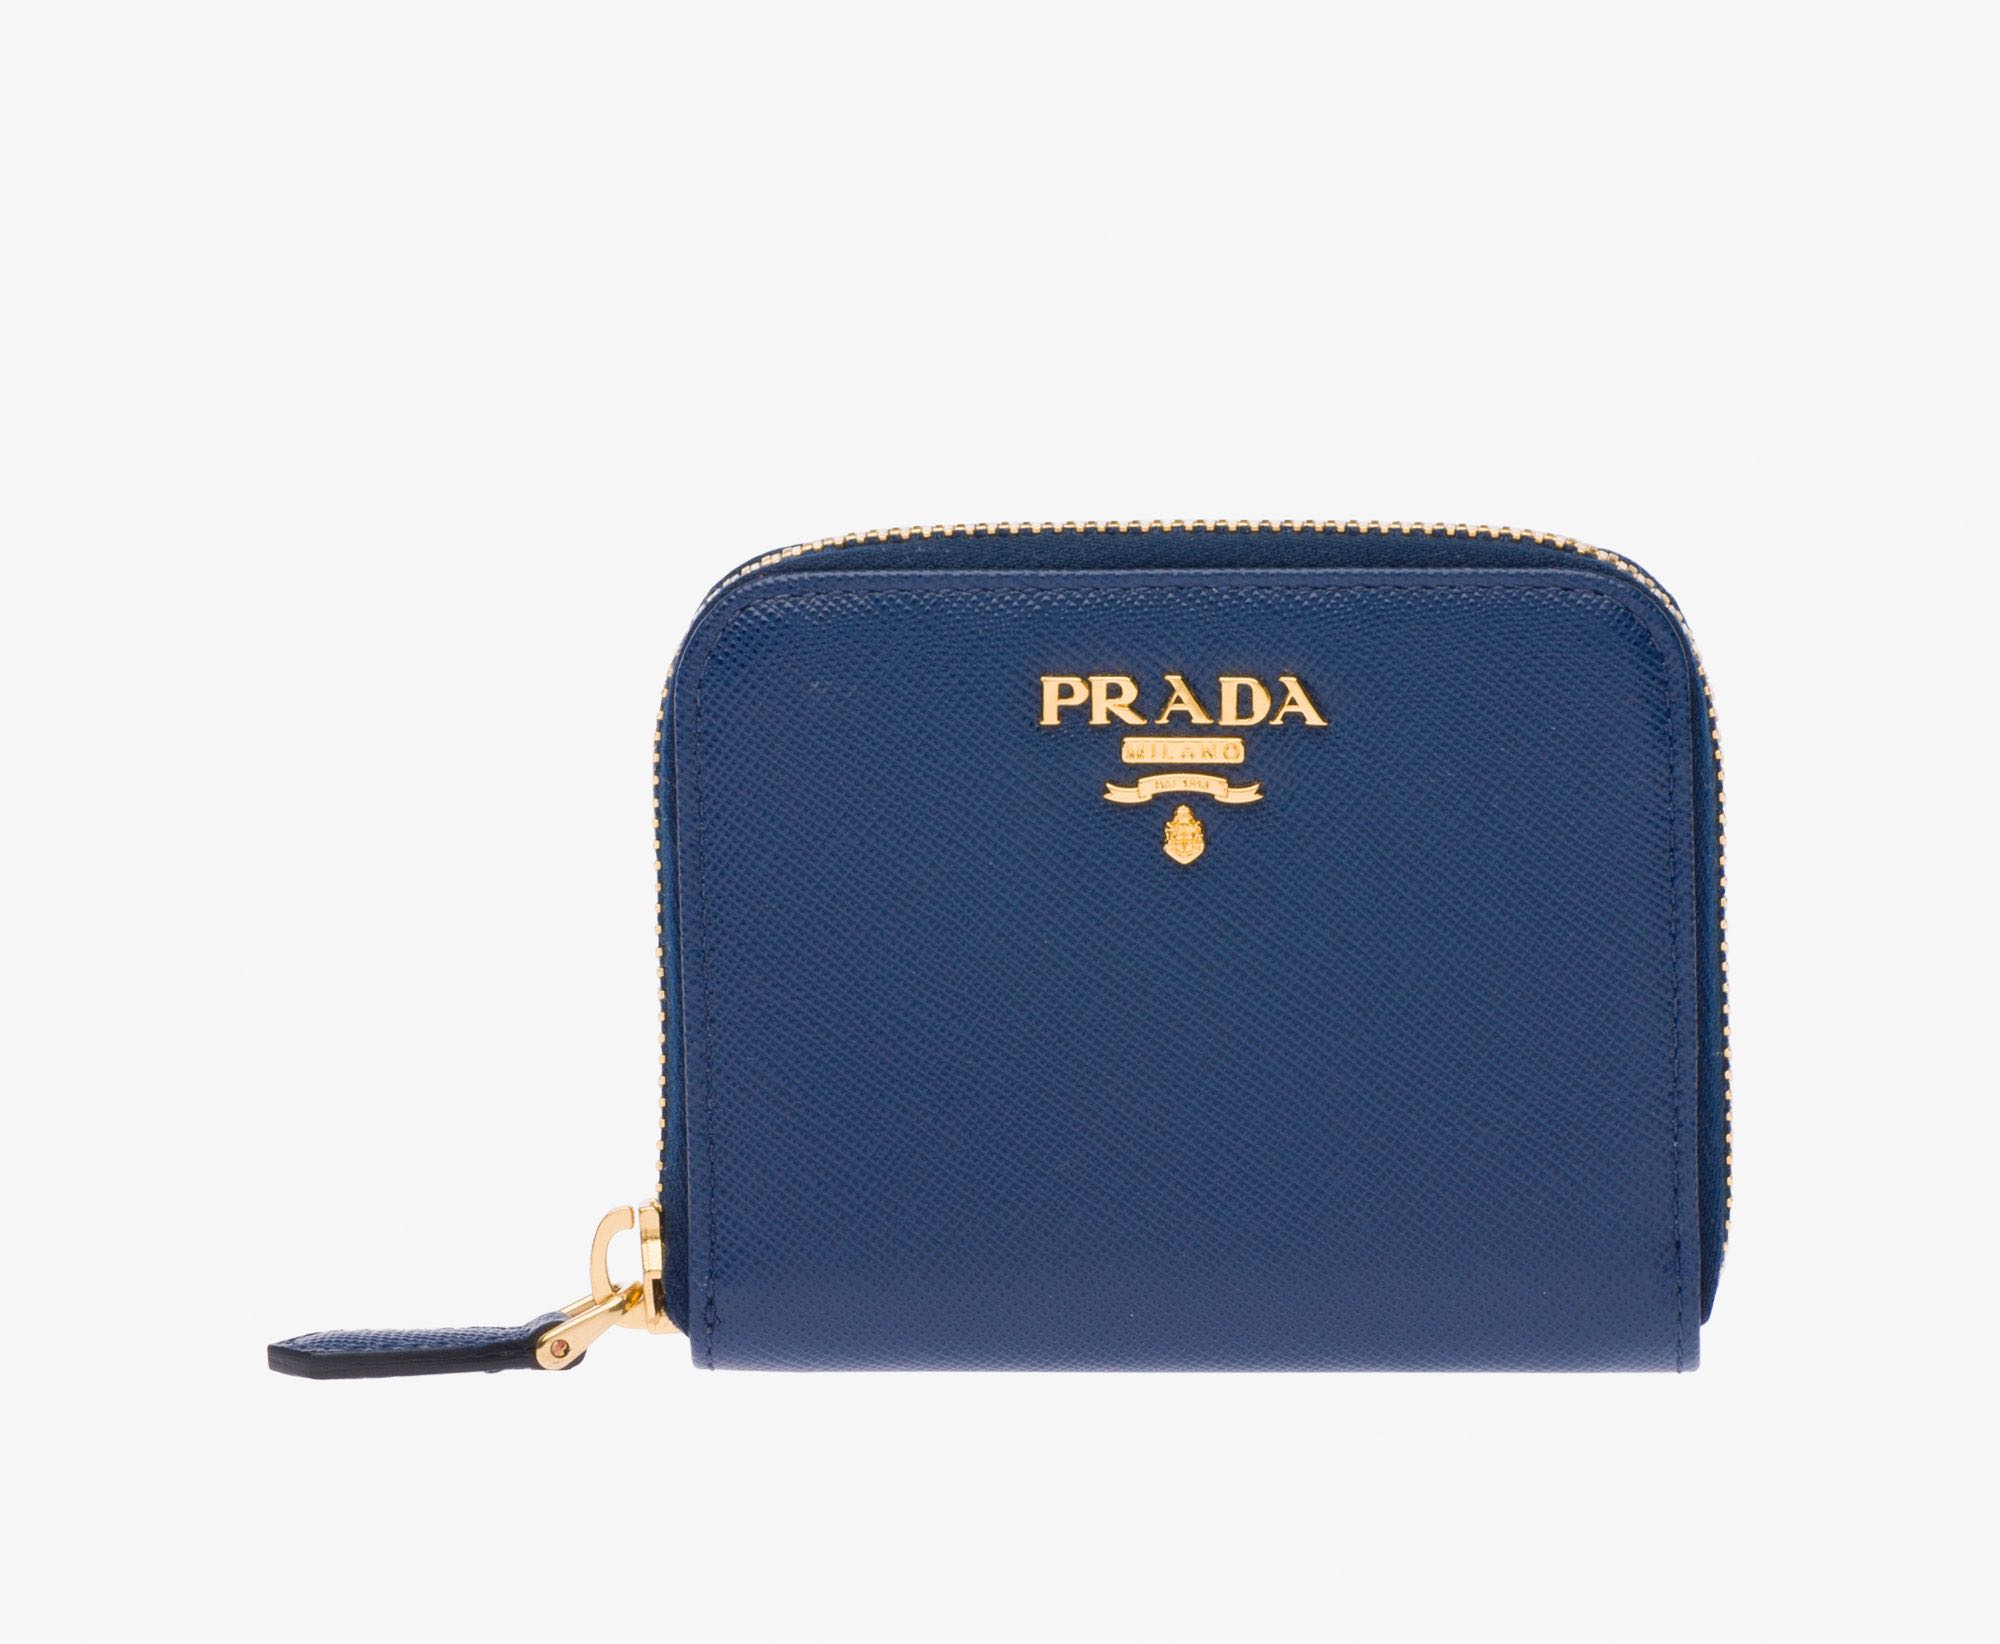 7ed1476c4c13 Prada Saffiano Leather Coin Purse, Women's Fashion, Bags & Wallets ...